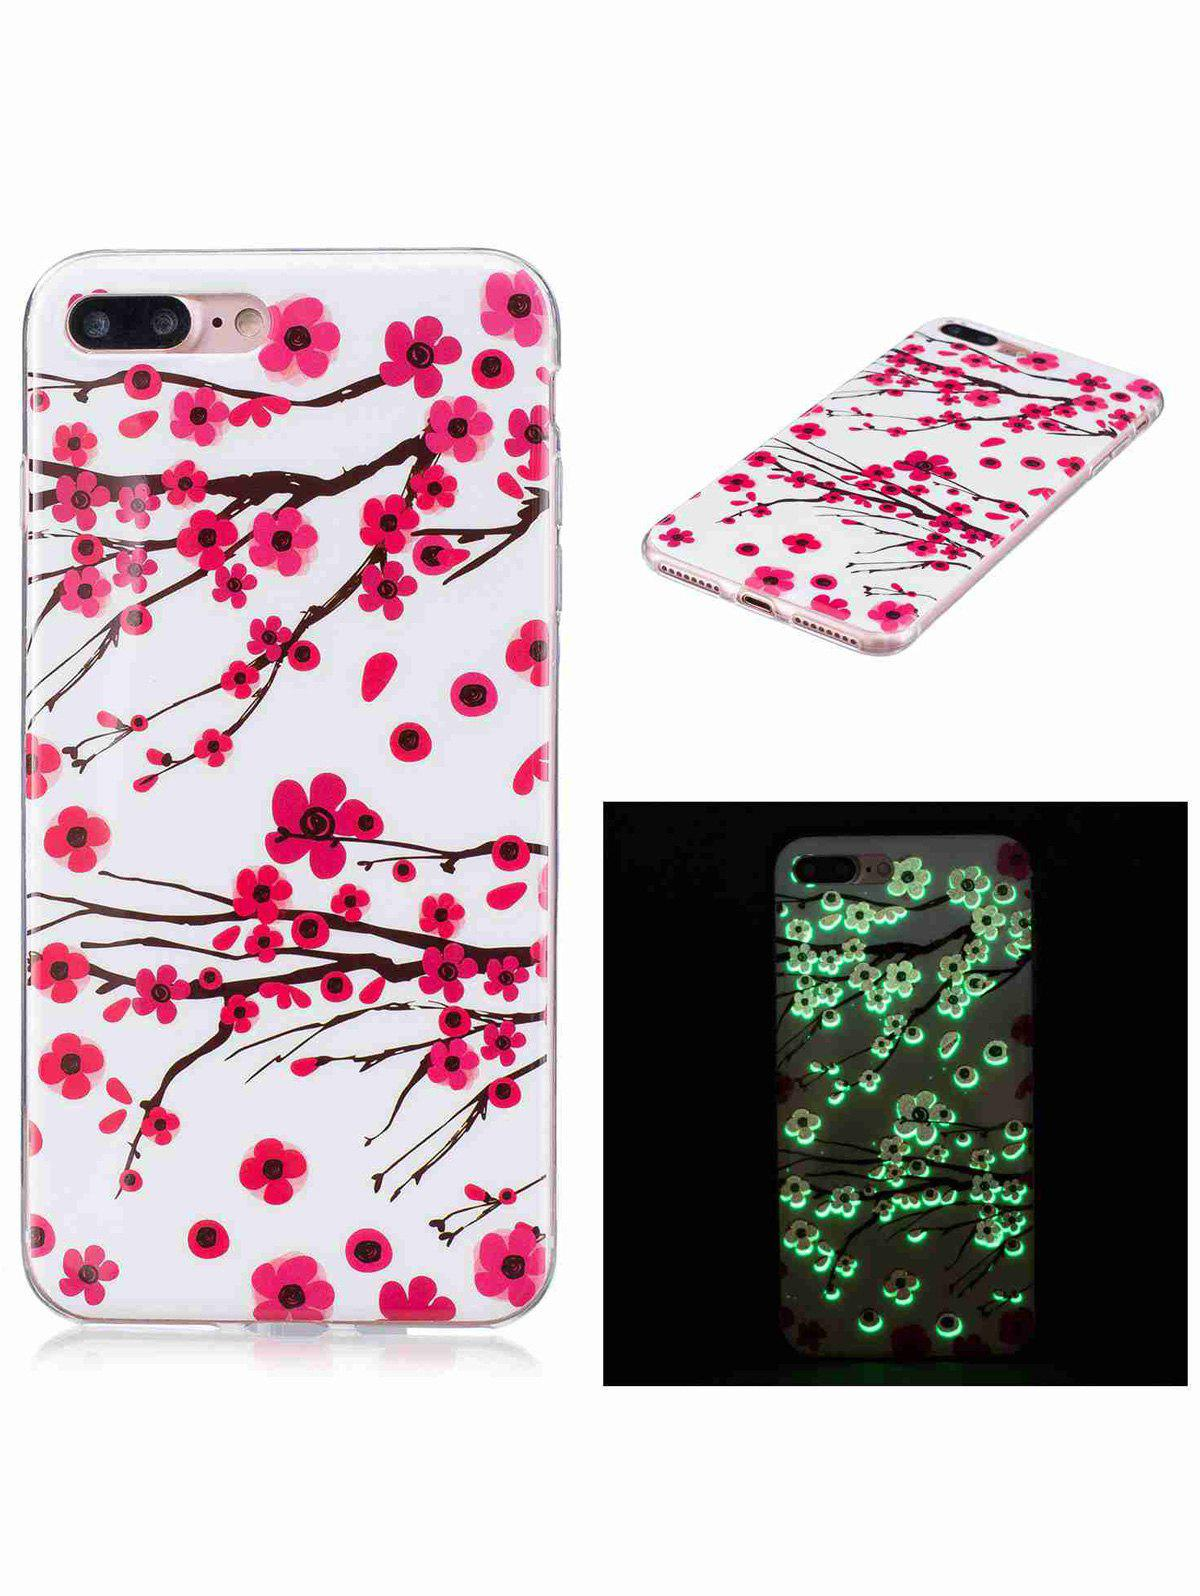 Plum Blossom Luminous Phone Back Cover For iPhoneHome<br><br><br>Size: FOR IPHONE 6 / 6S<br>Color: RED